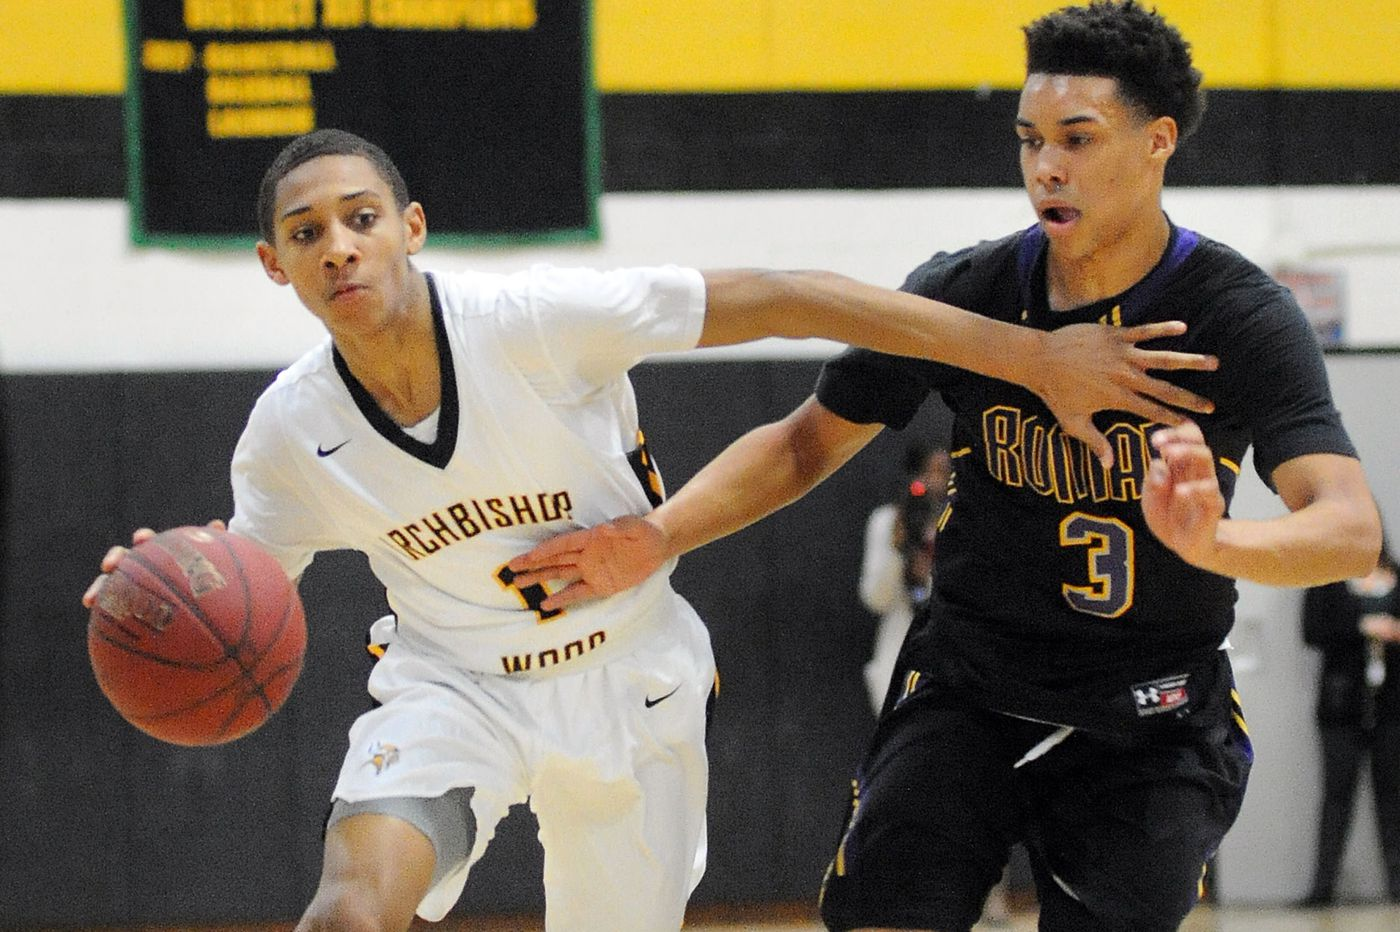 Thursday's Southeastern Pa. roundup: Robeson's Walter Hester reaches 1,000 career points